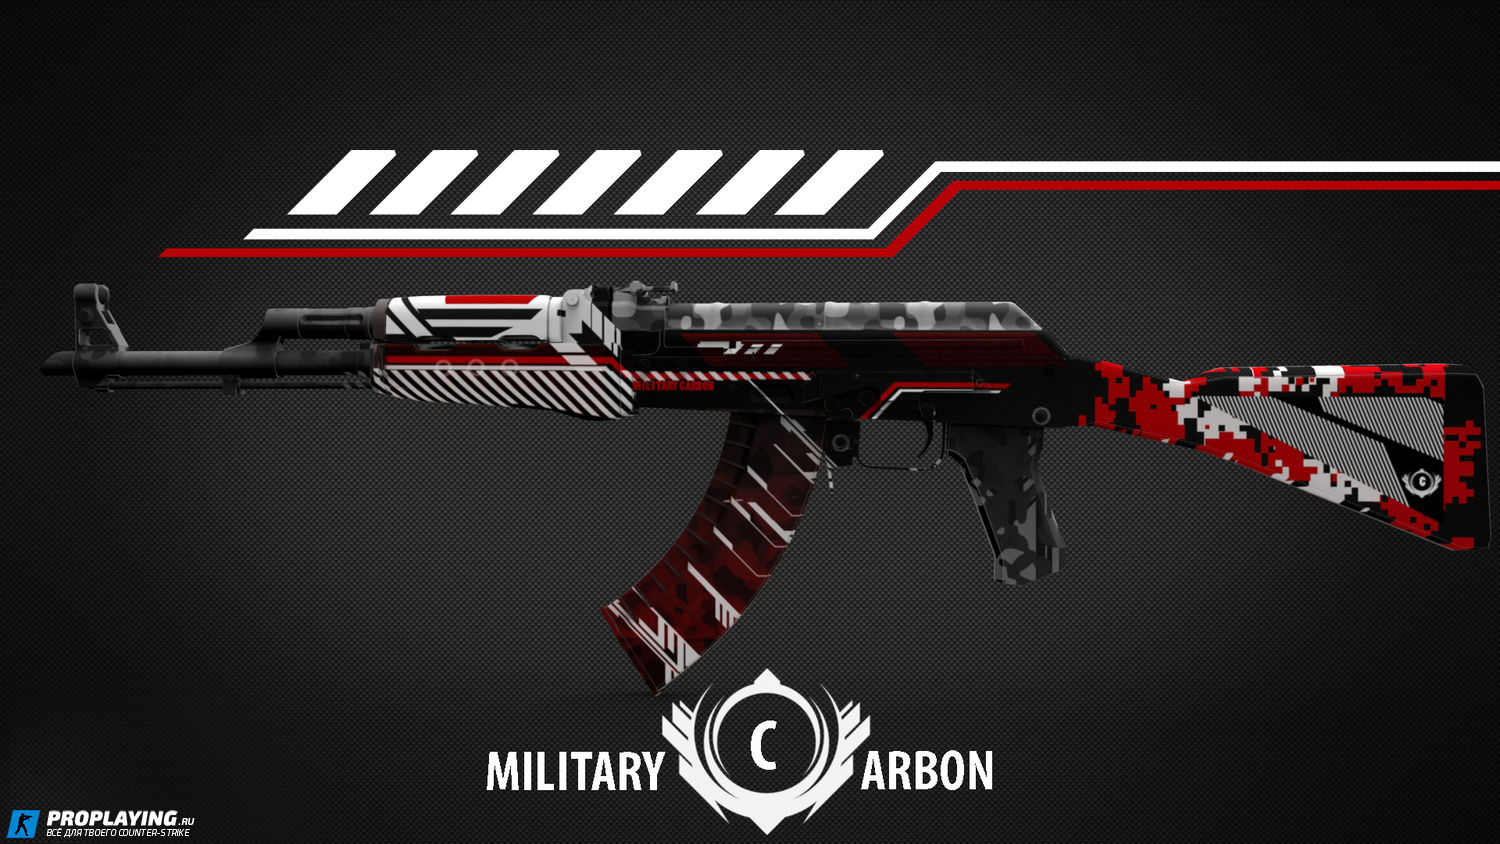 HD скин AK-47 «Military Carbon» для CS 1.6 с осмотром